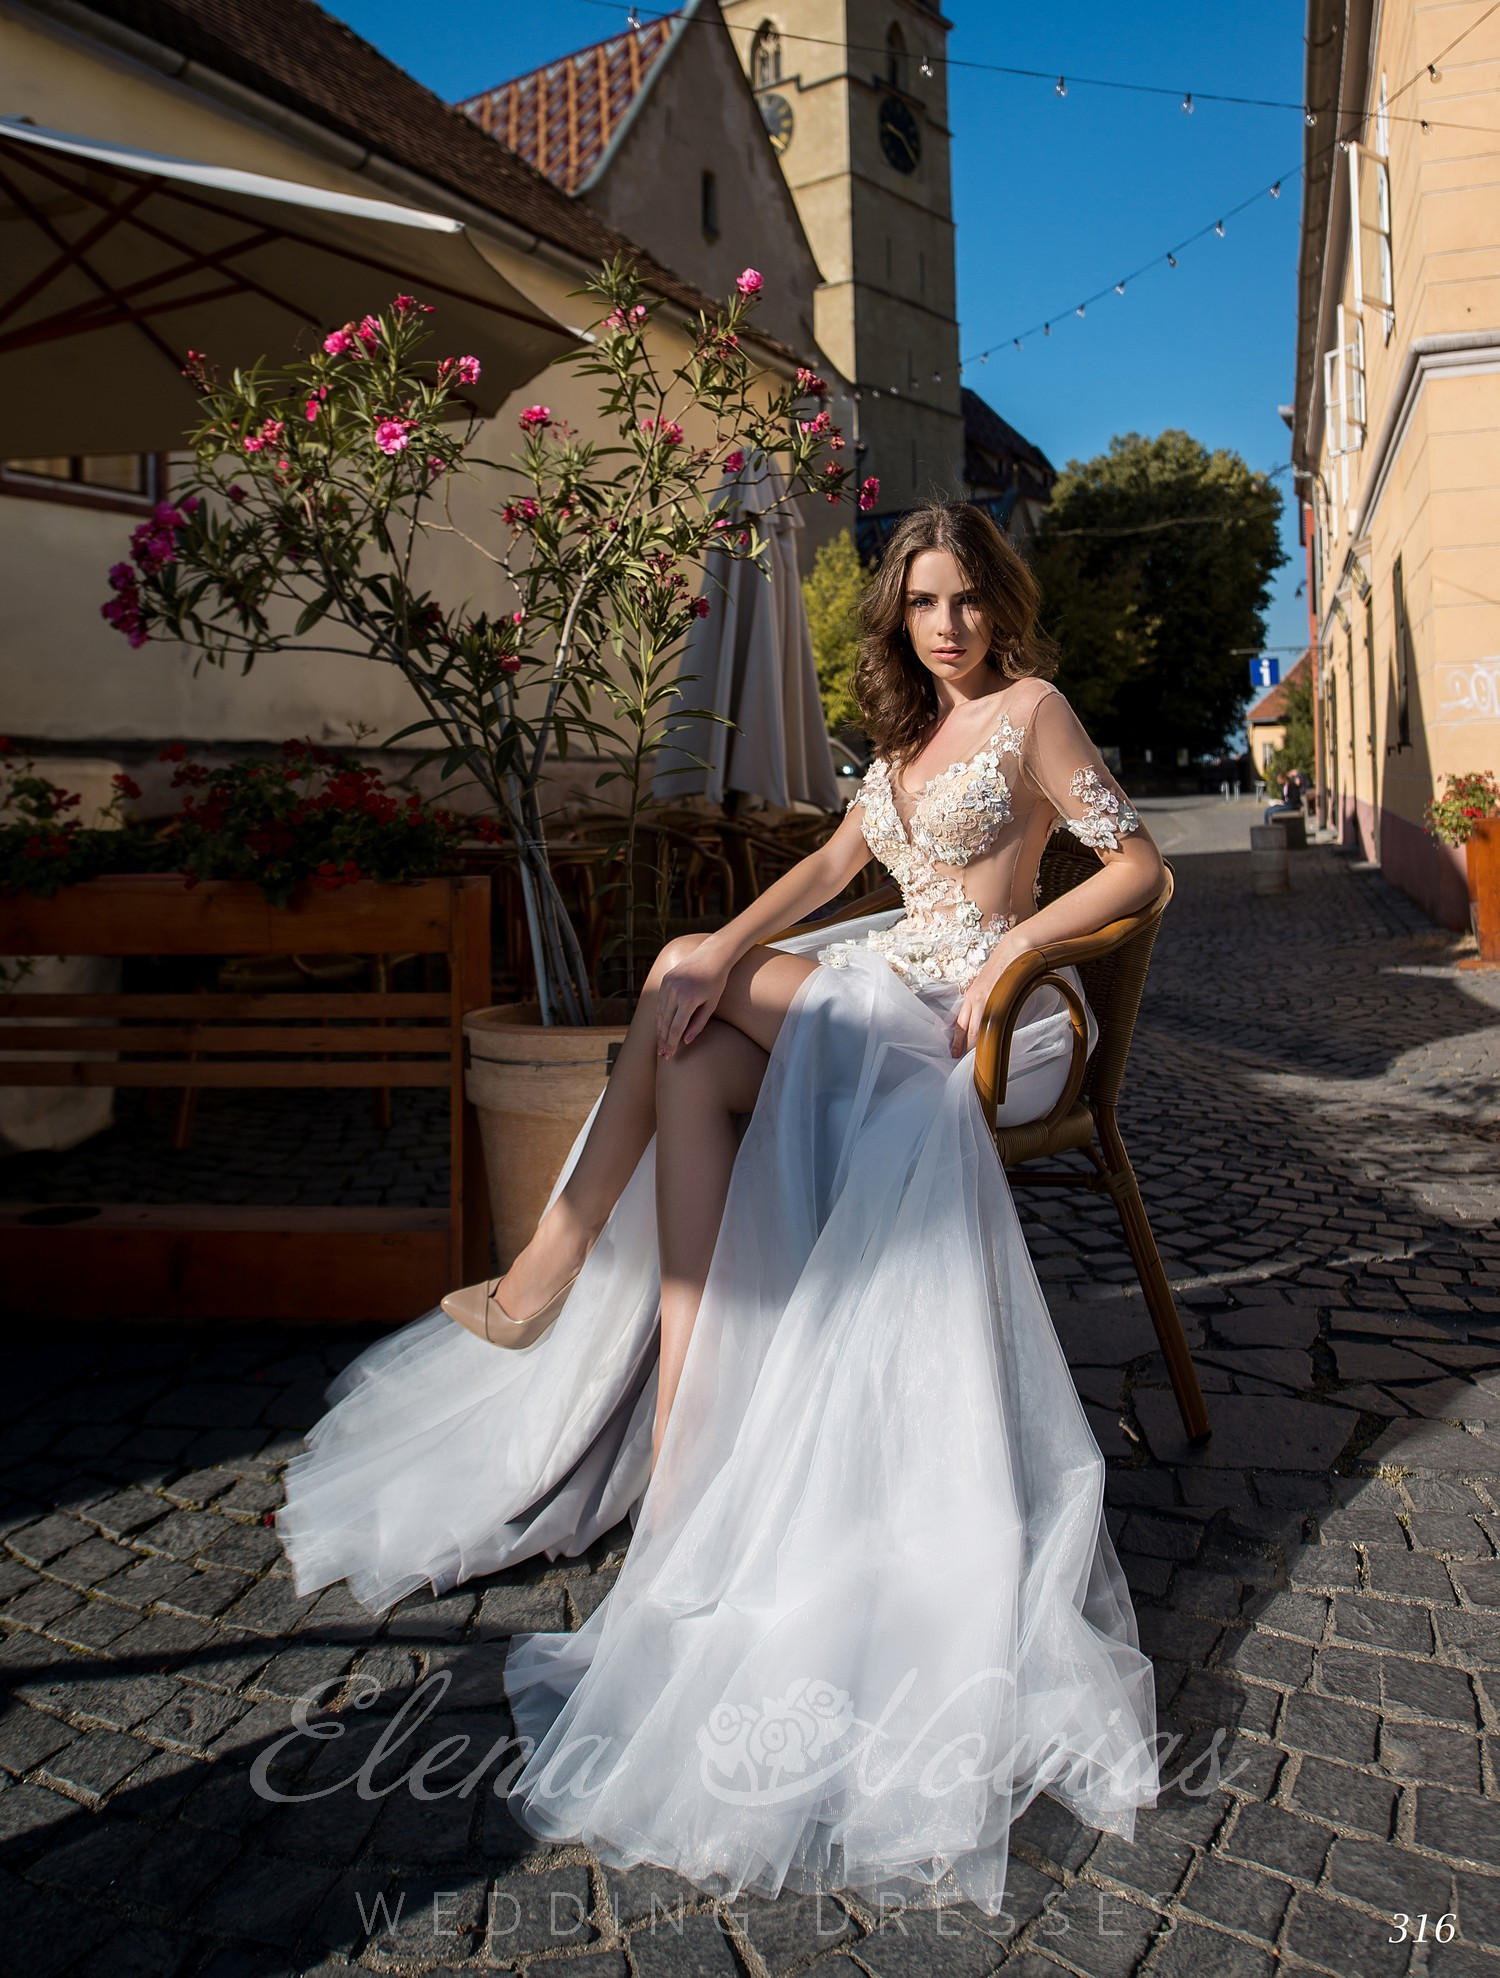 Wedding dress with a cut on the leg